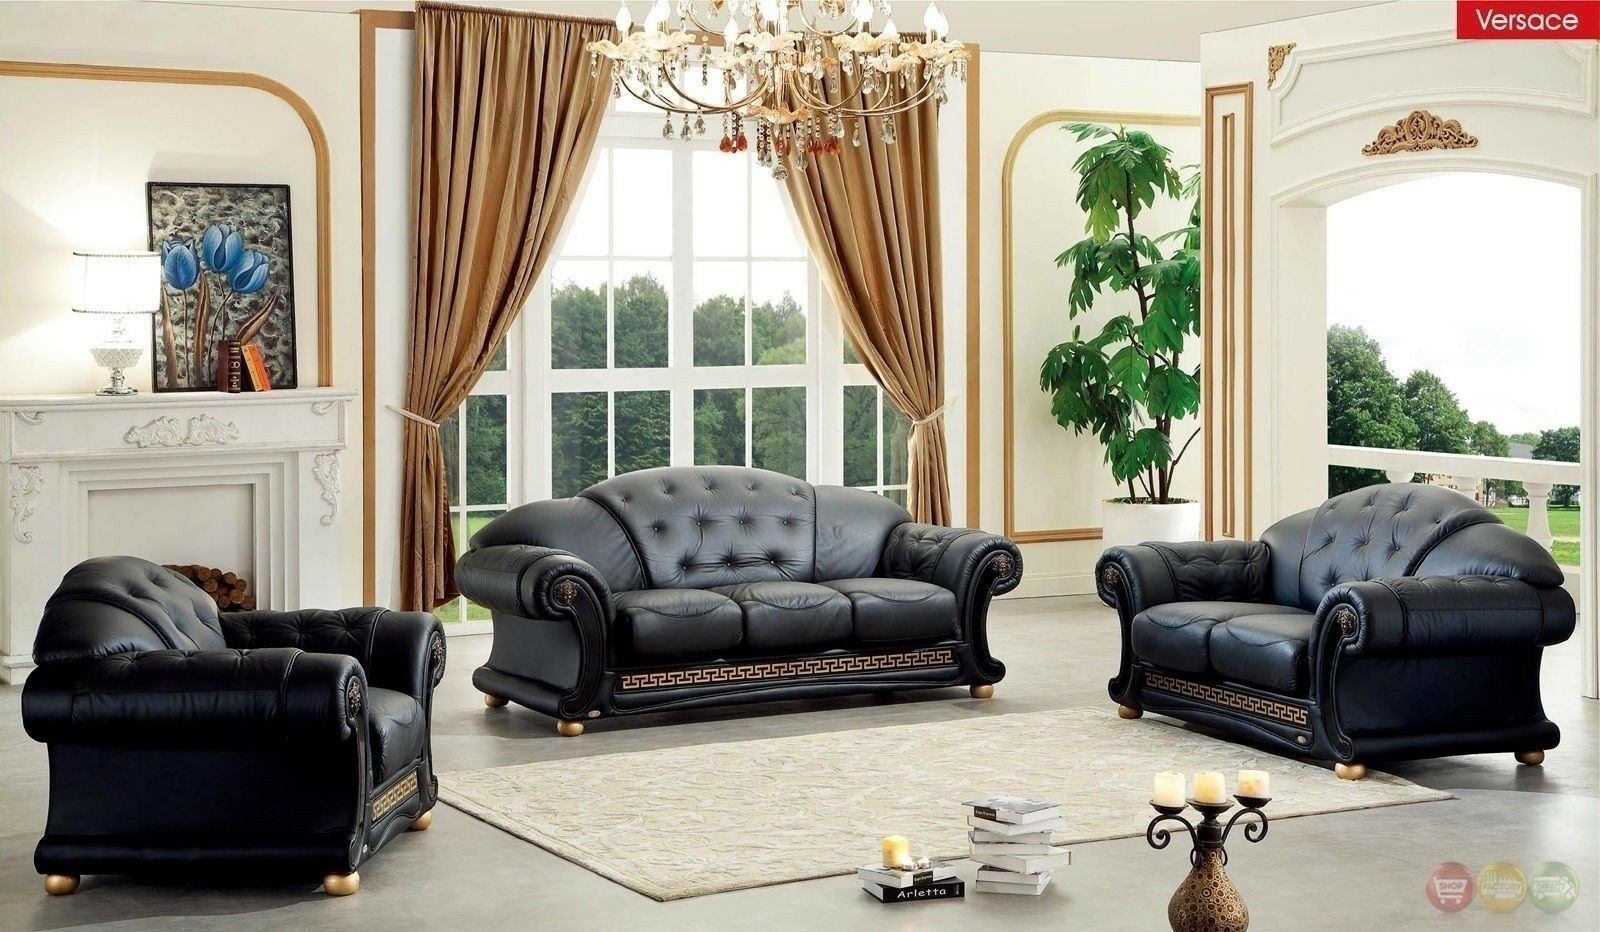 Black Genuine Top Grain Italian Leather Luxurious Living Room Sofa Set